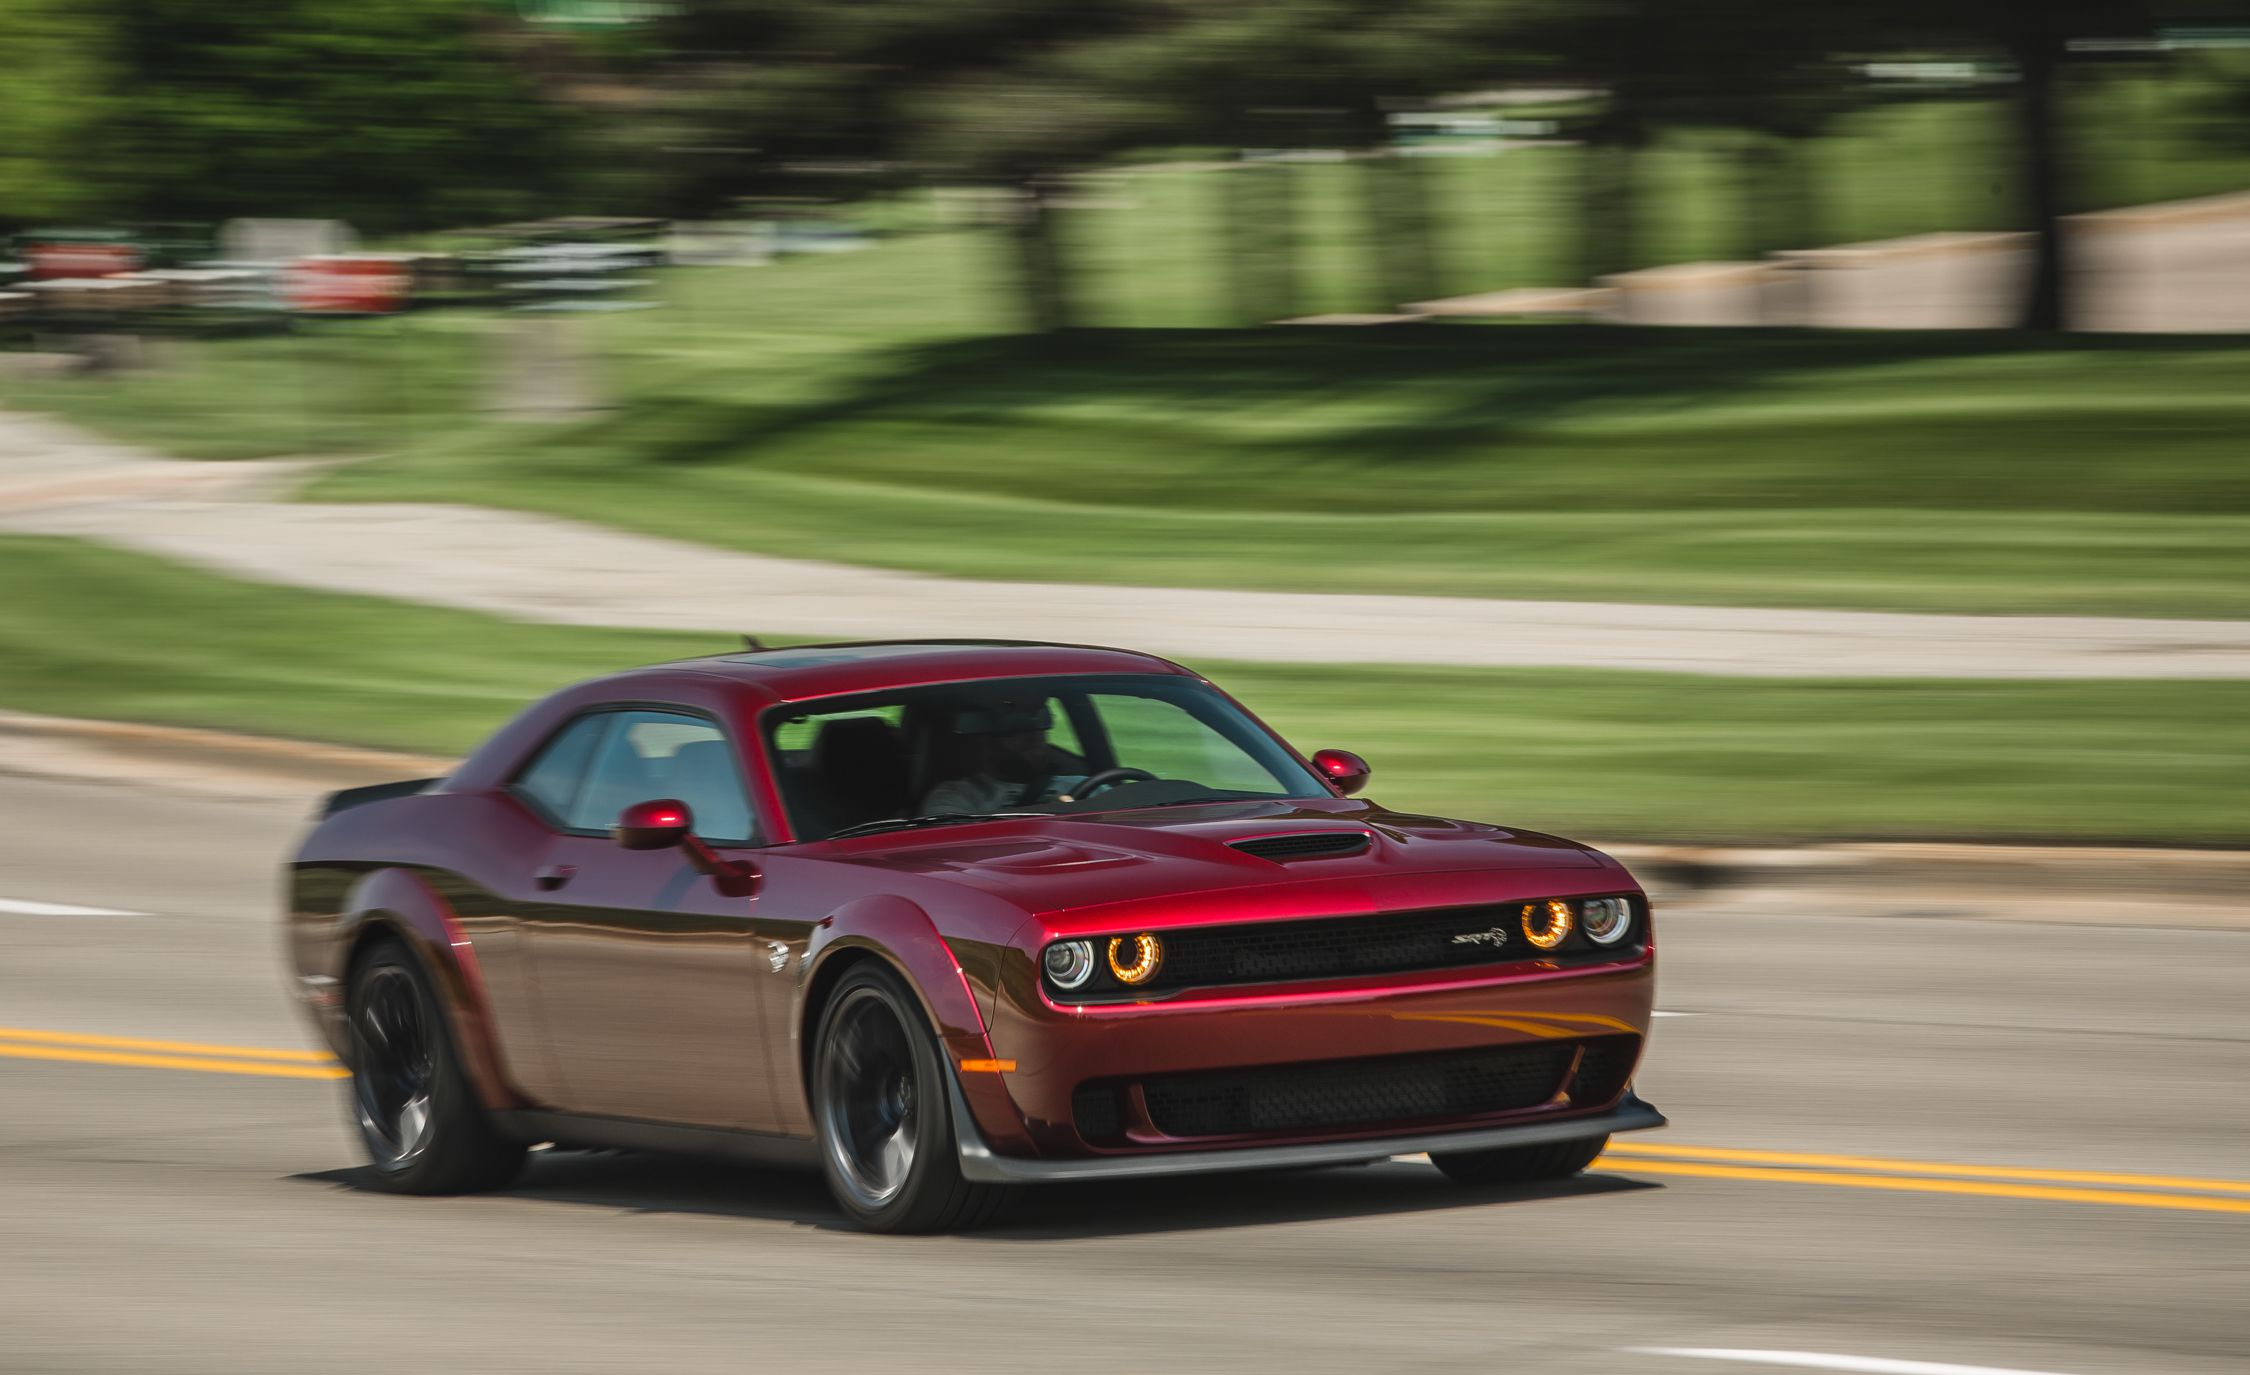 2018 Dodge Challenger SRT Hellcat Widebody (Color: Octane Red) Front Three-Quarter Wallpapers (2)